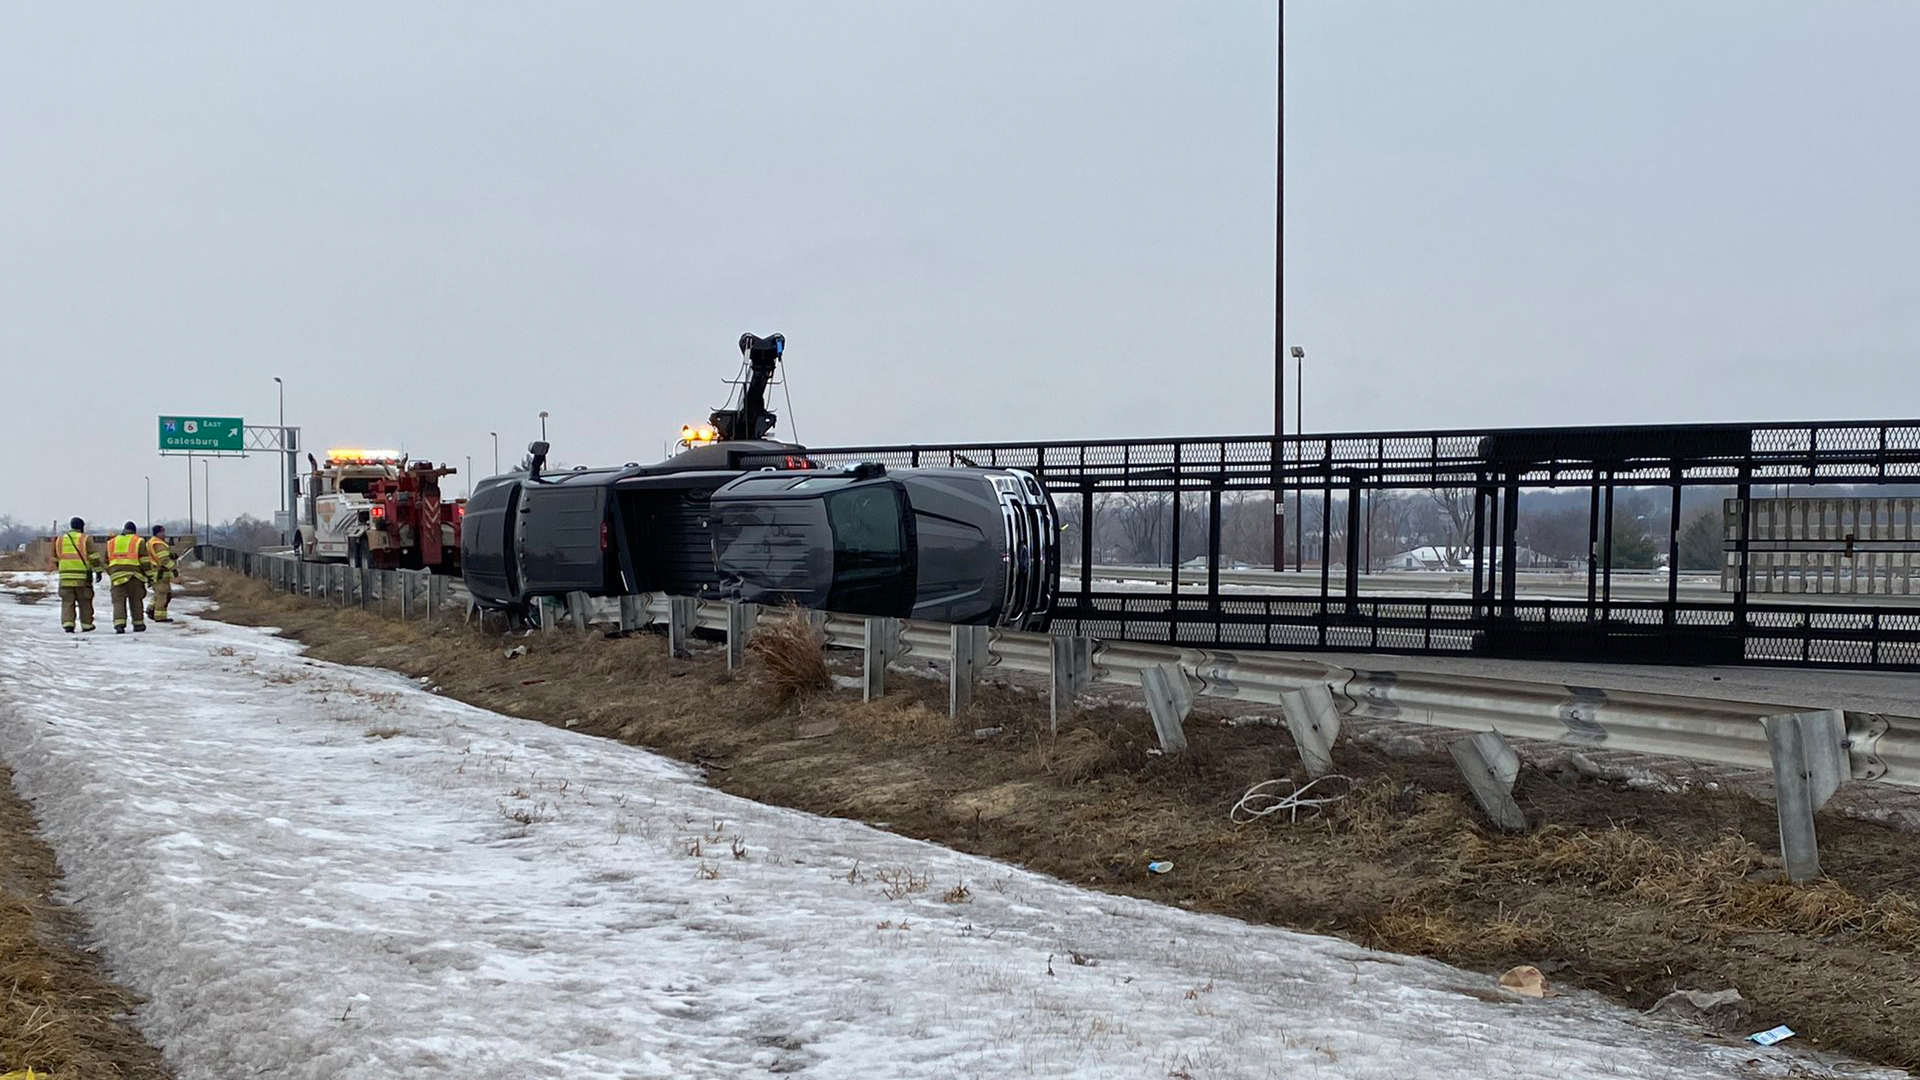 A semi rolled over on John Deere Road near the I-74 interchange in Moline on January 25, 2021 (photo: Zack Winiecki, OurQuadCities.com).